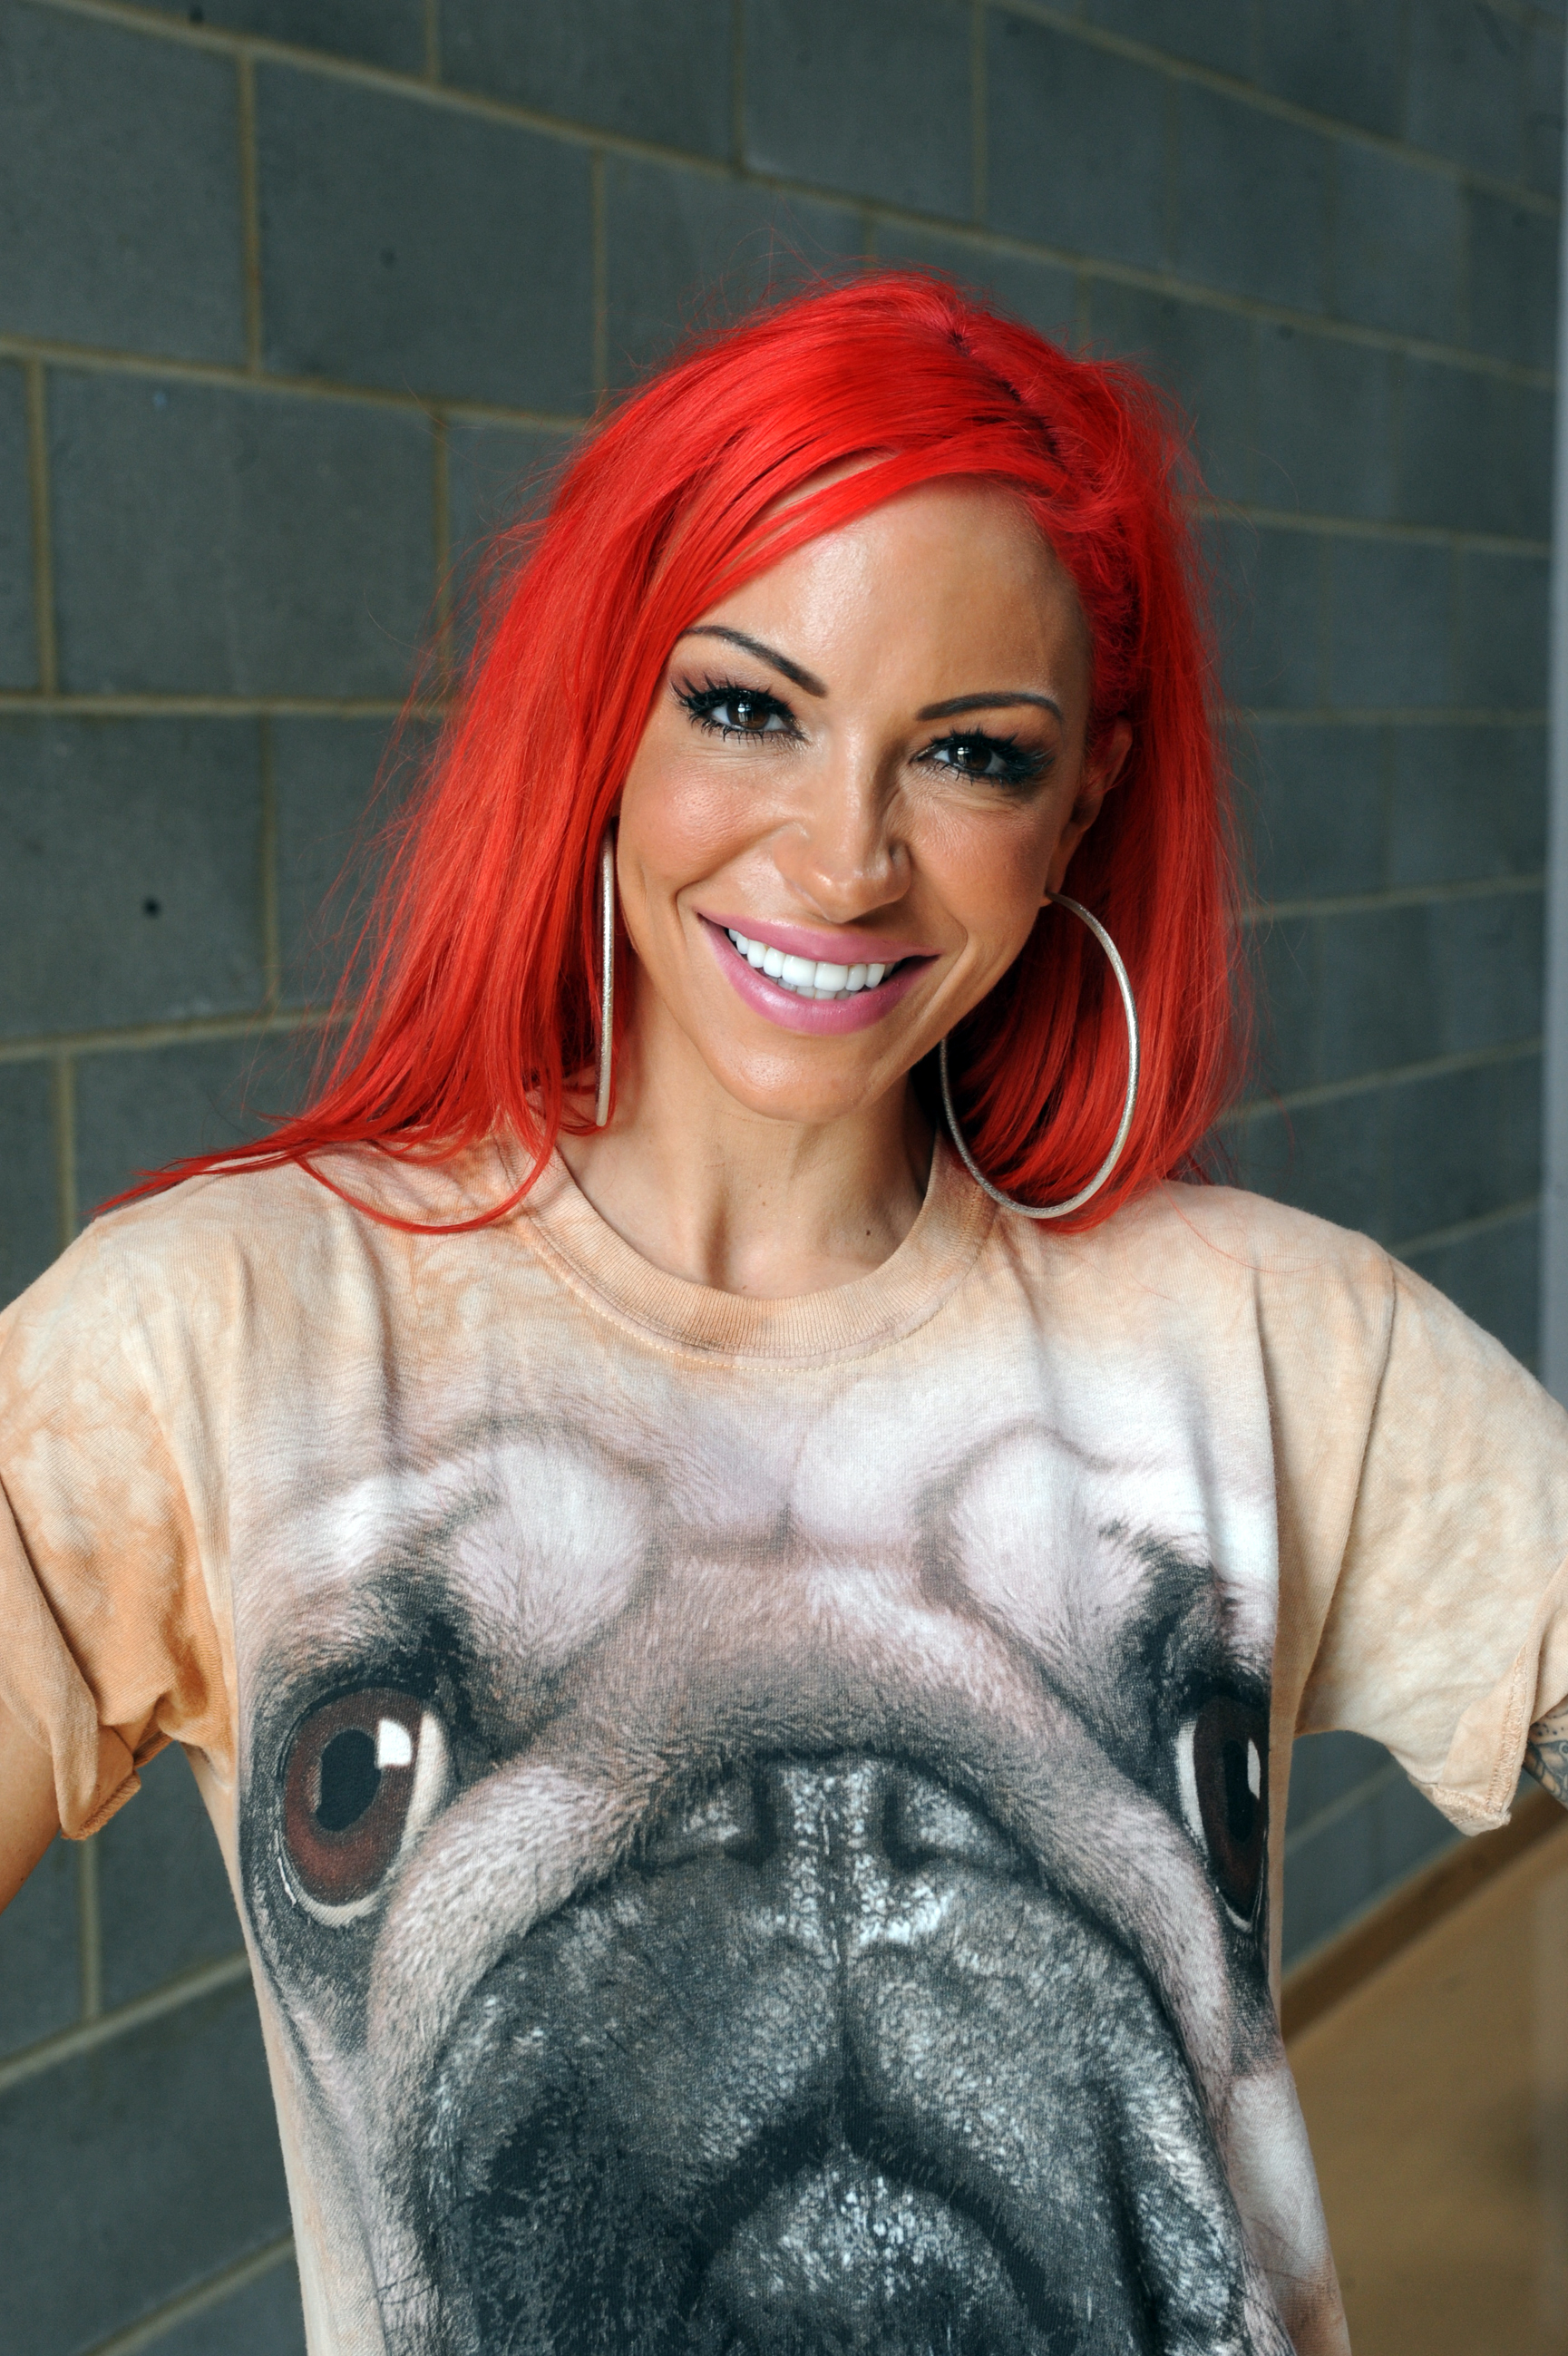 Jodie Marsh. Pic credit: Steve O'Connell